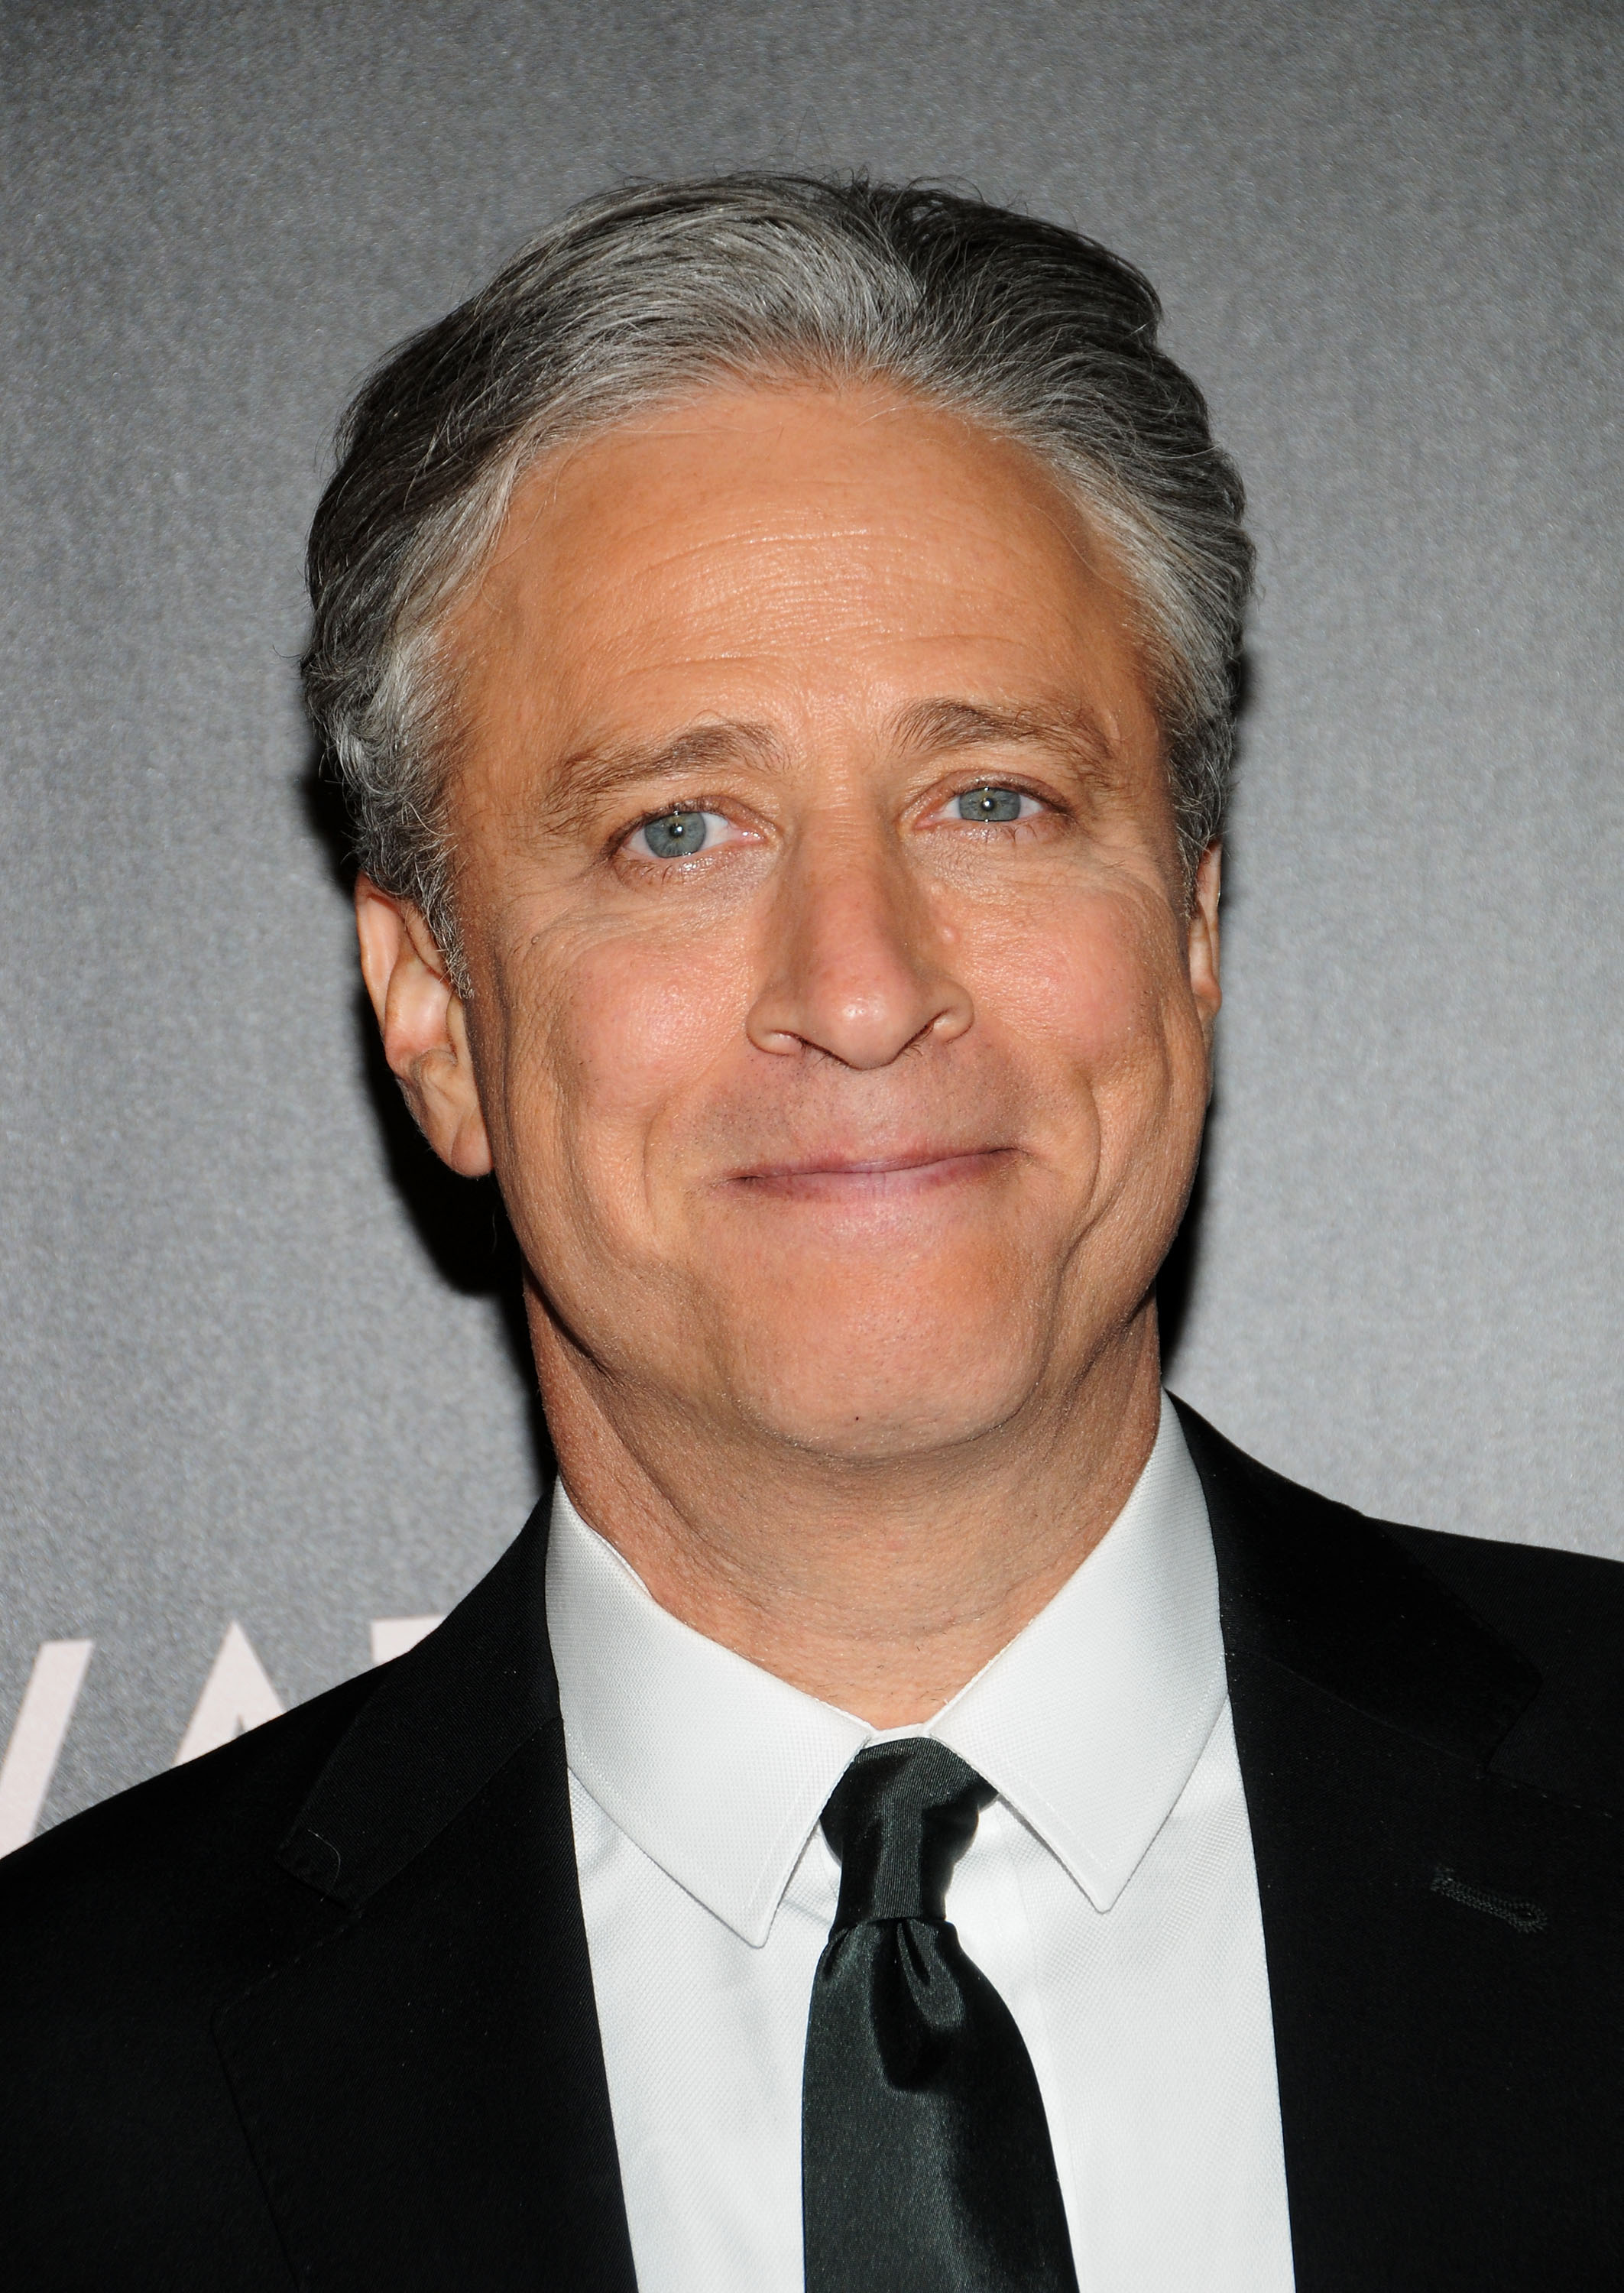 Director/writer/producer Jon Stewart attends  Rosewater  New York Premiere at AMC Lincoln Square Theater on November 12, 2014 in New York City.